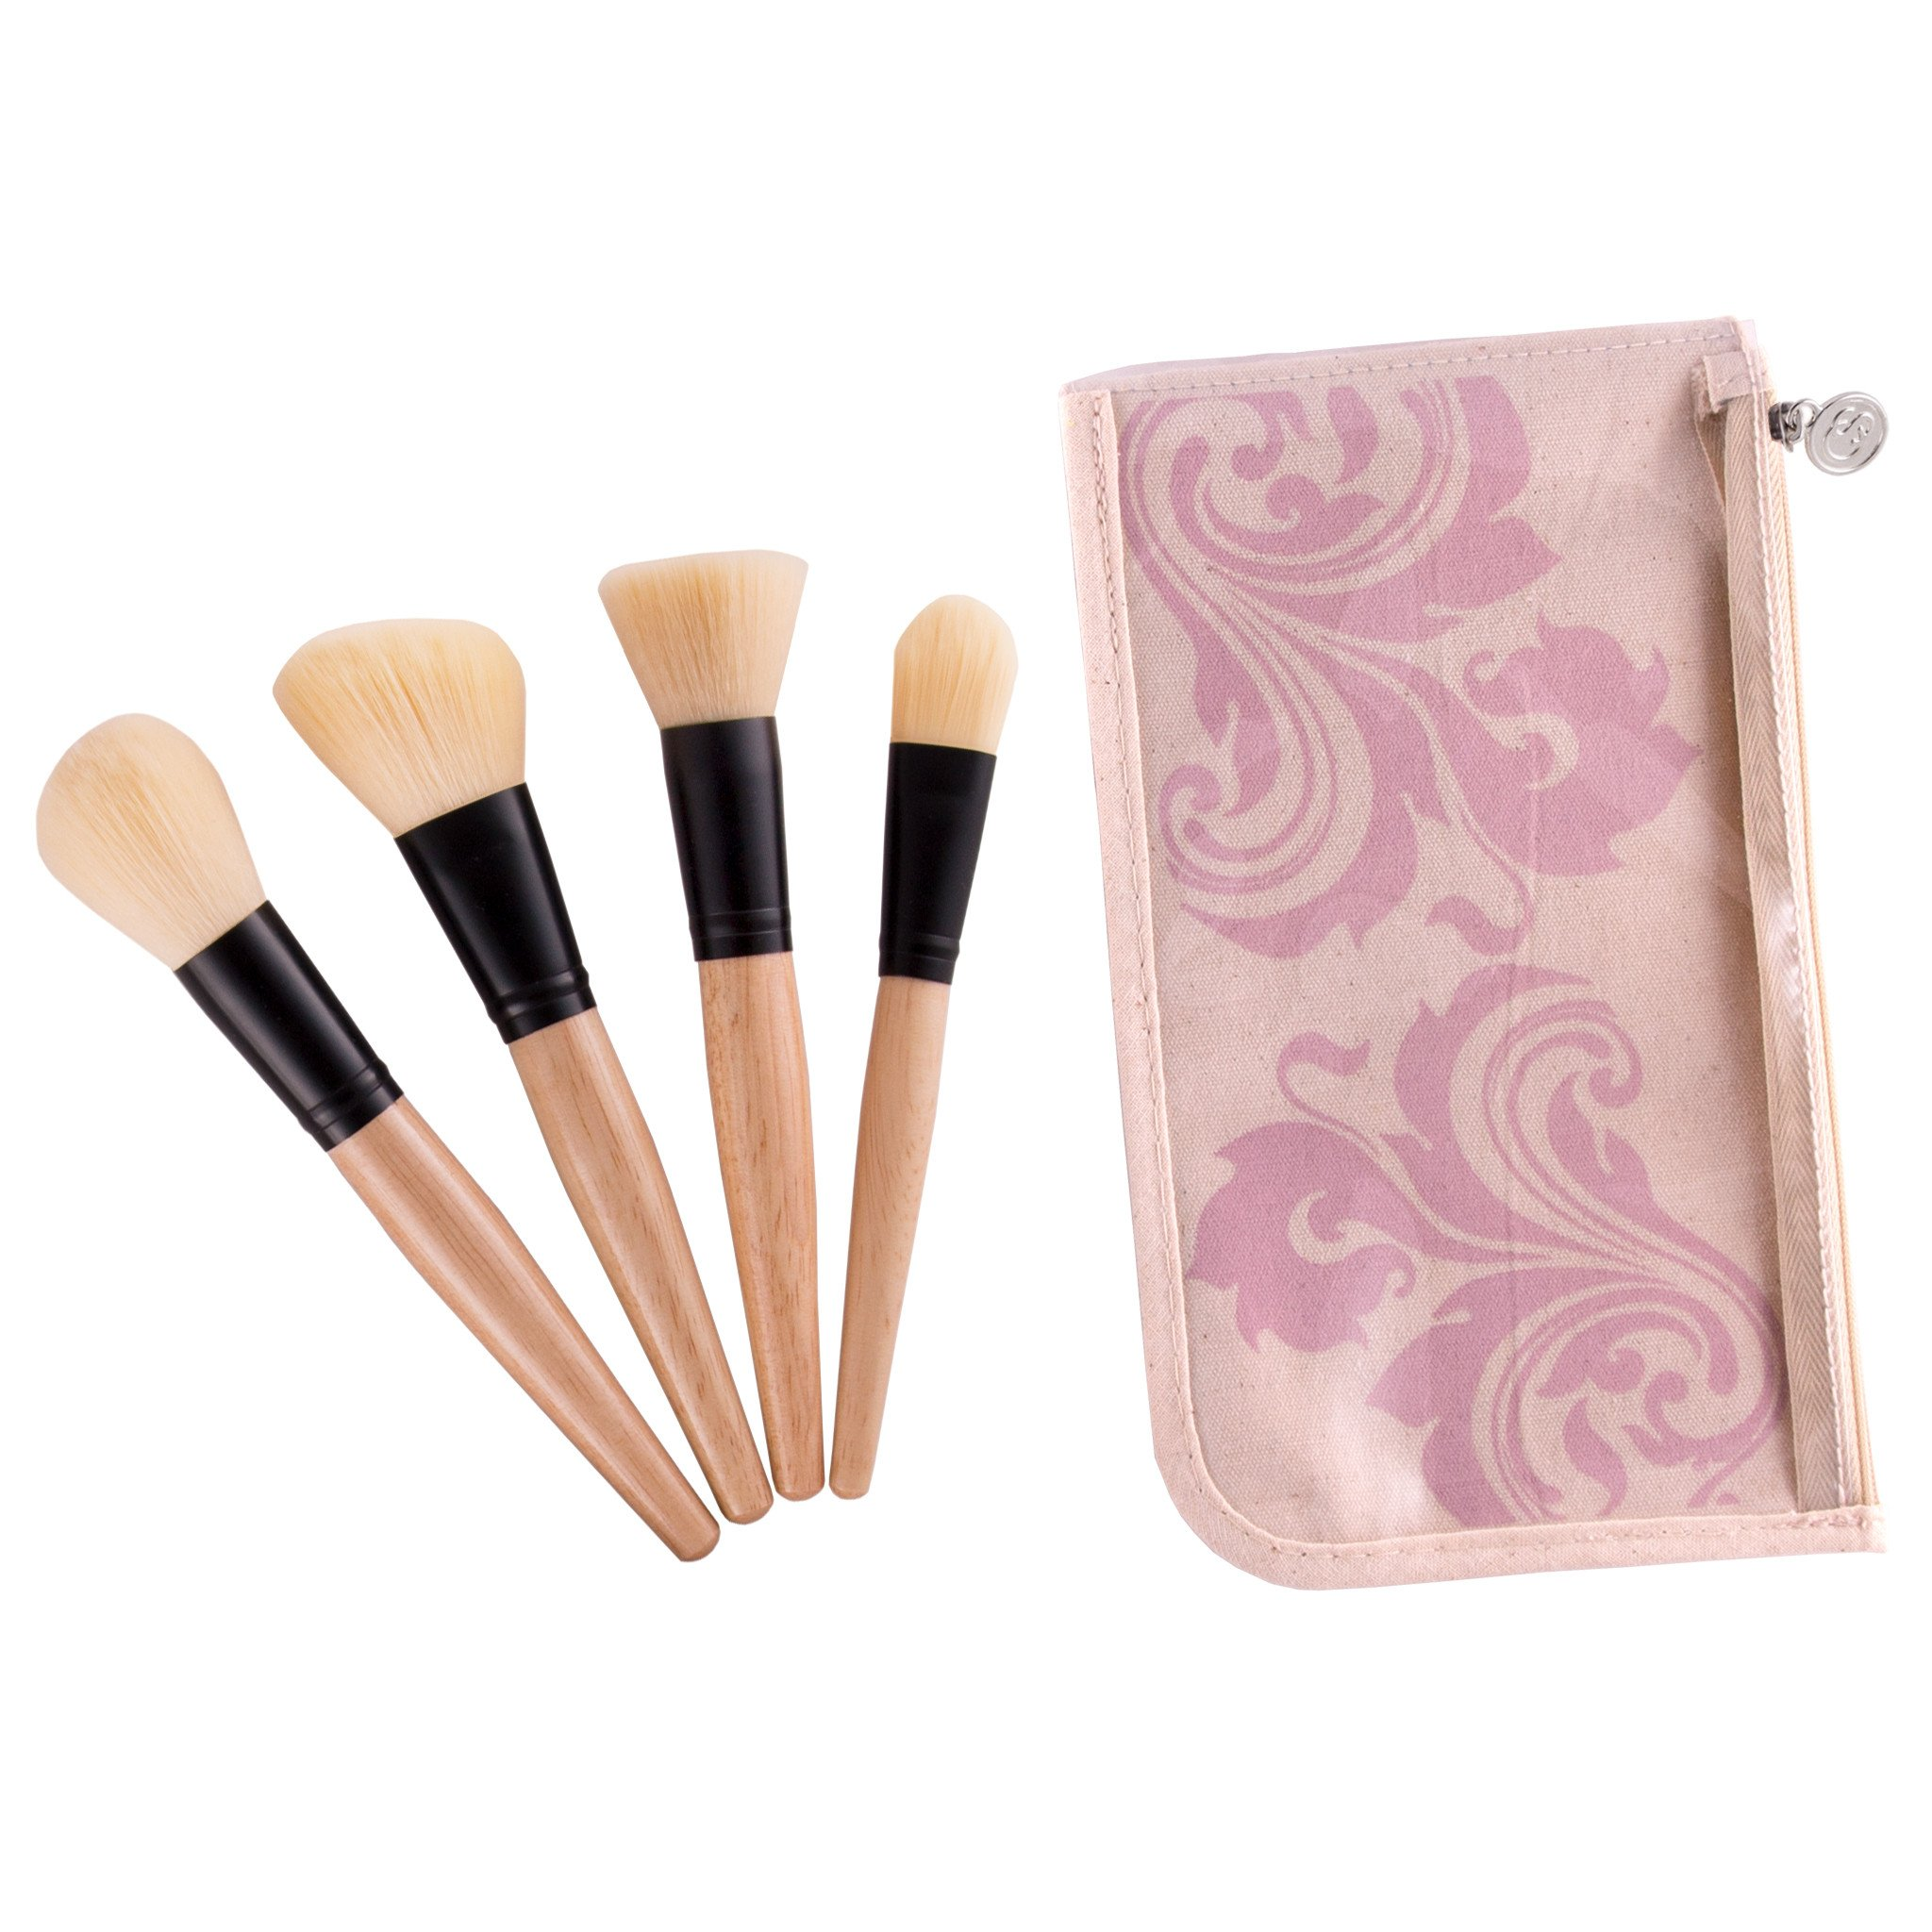 4 Face Brush Set Image